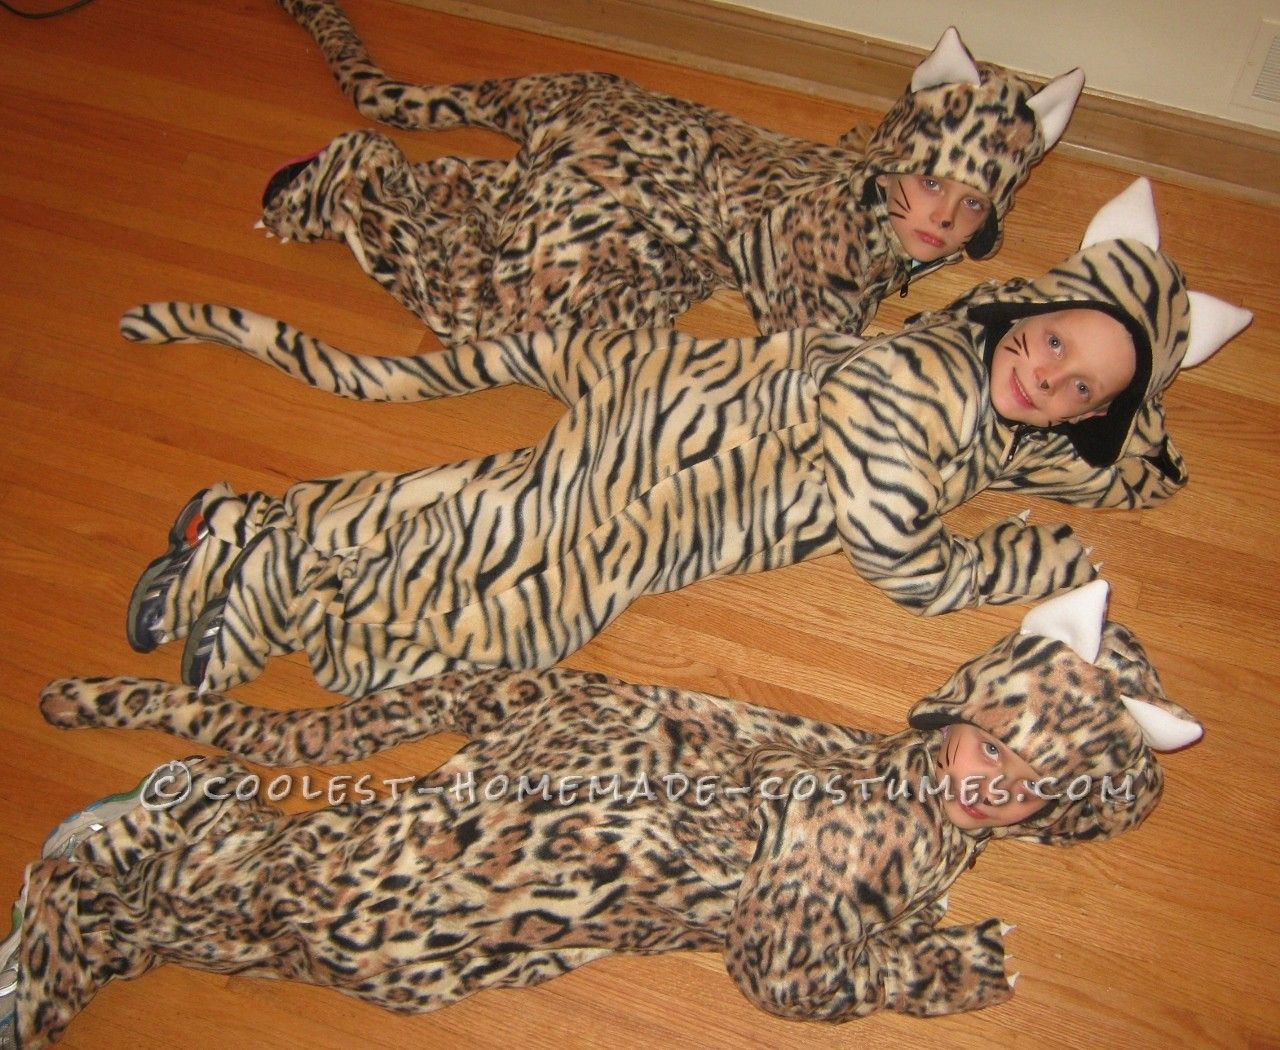 52041f776f1a Three Little Kittens Who Didn't Lose Their Mittens!... This website is the  Pinterest of costumes